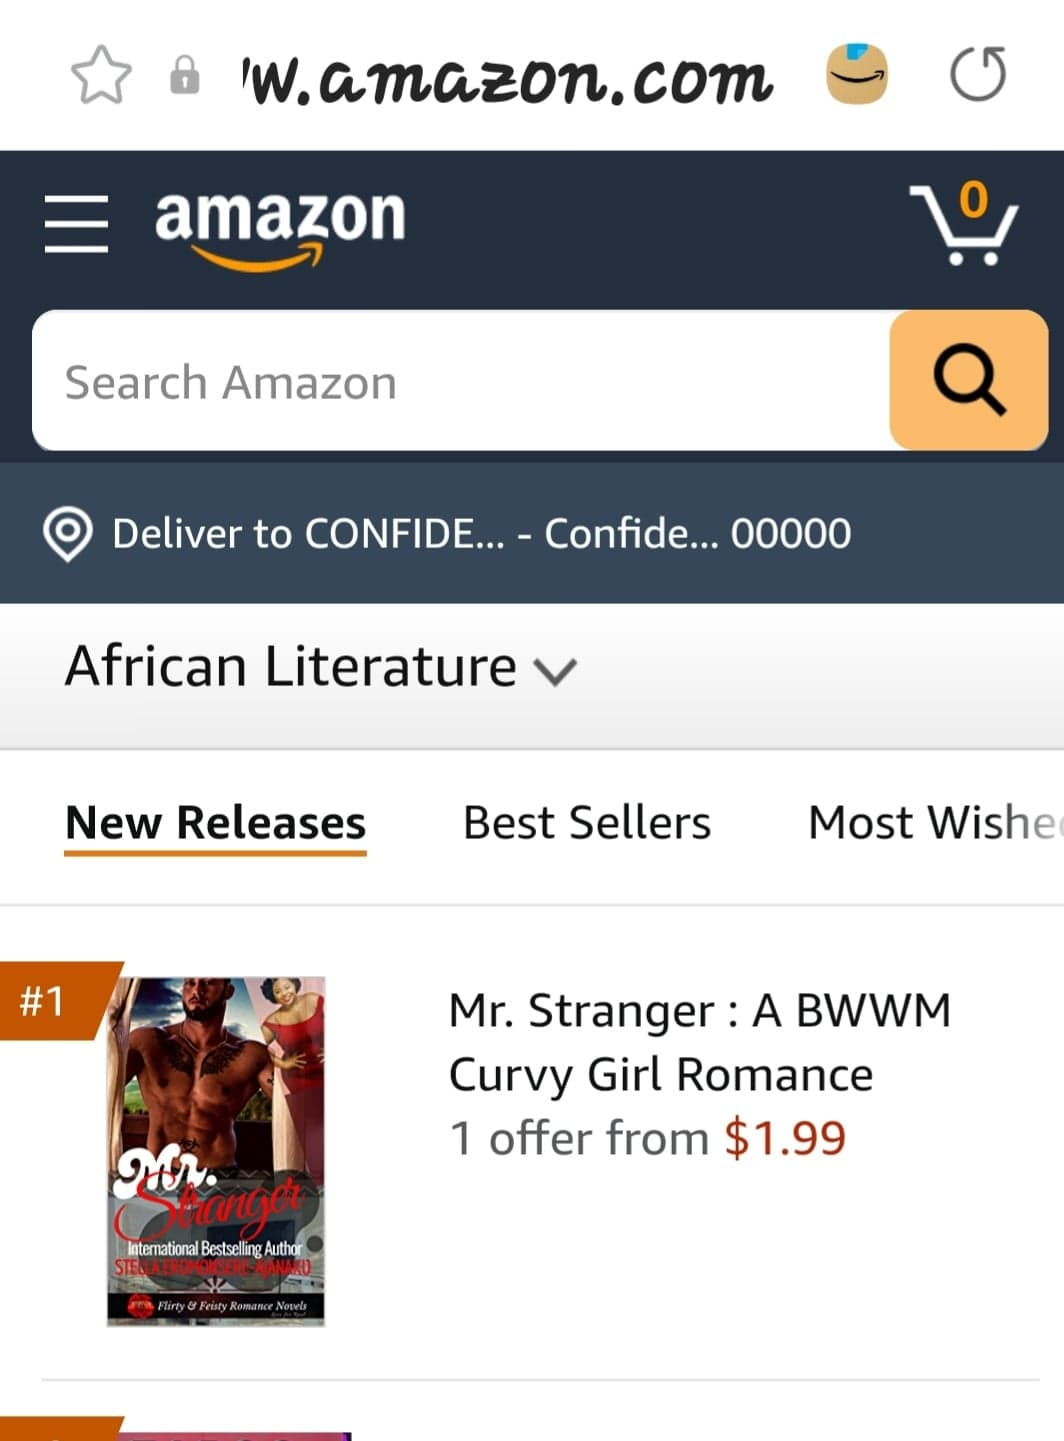 ¸.•* 🔮MY░HOT ░NEW░ RELEASE🔮 🔥🔥🔥🔥Mr. Stranger was Amazon #1 New Release🔥🔥🔥🔥